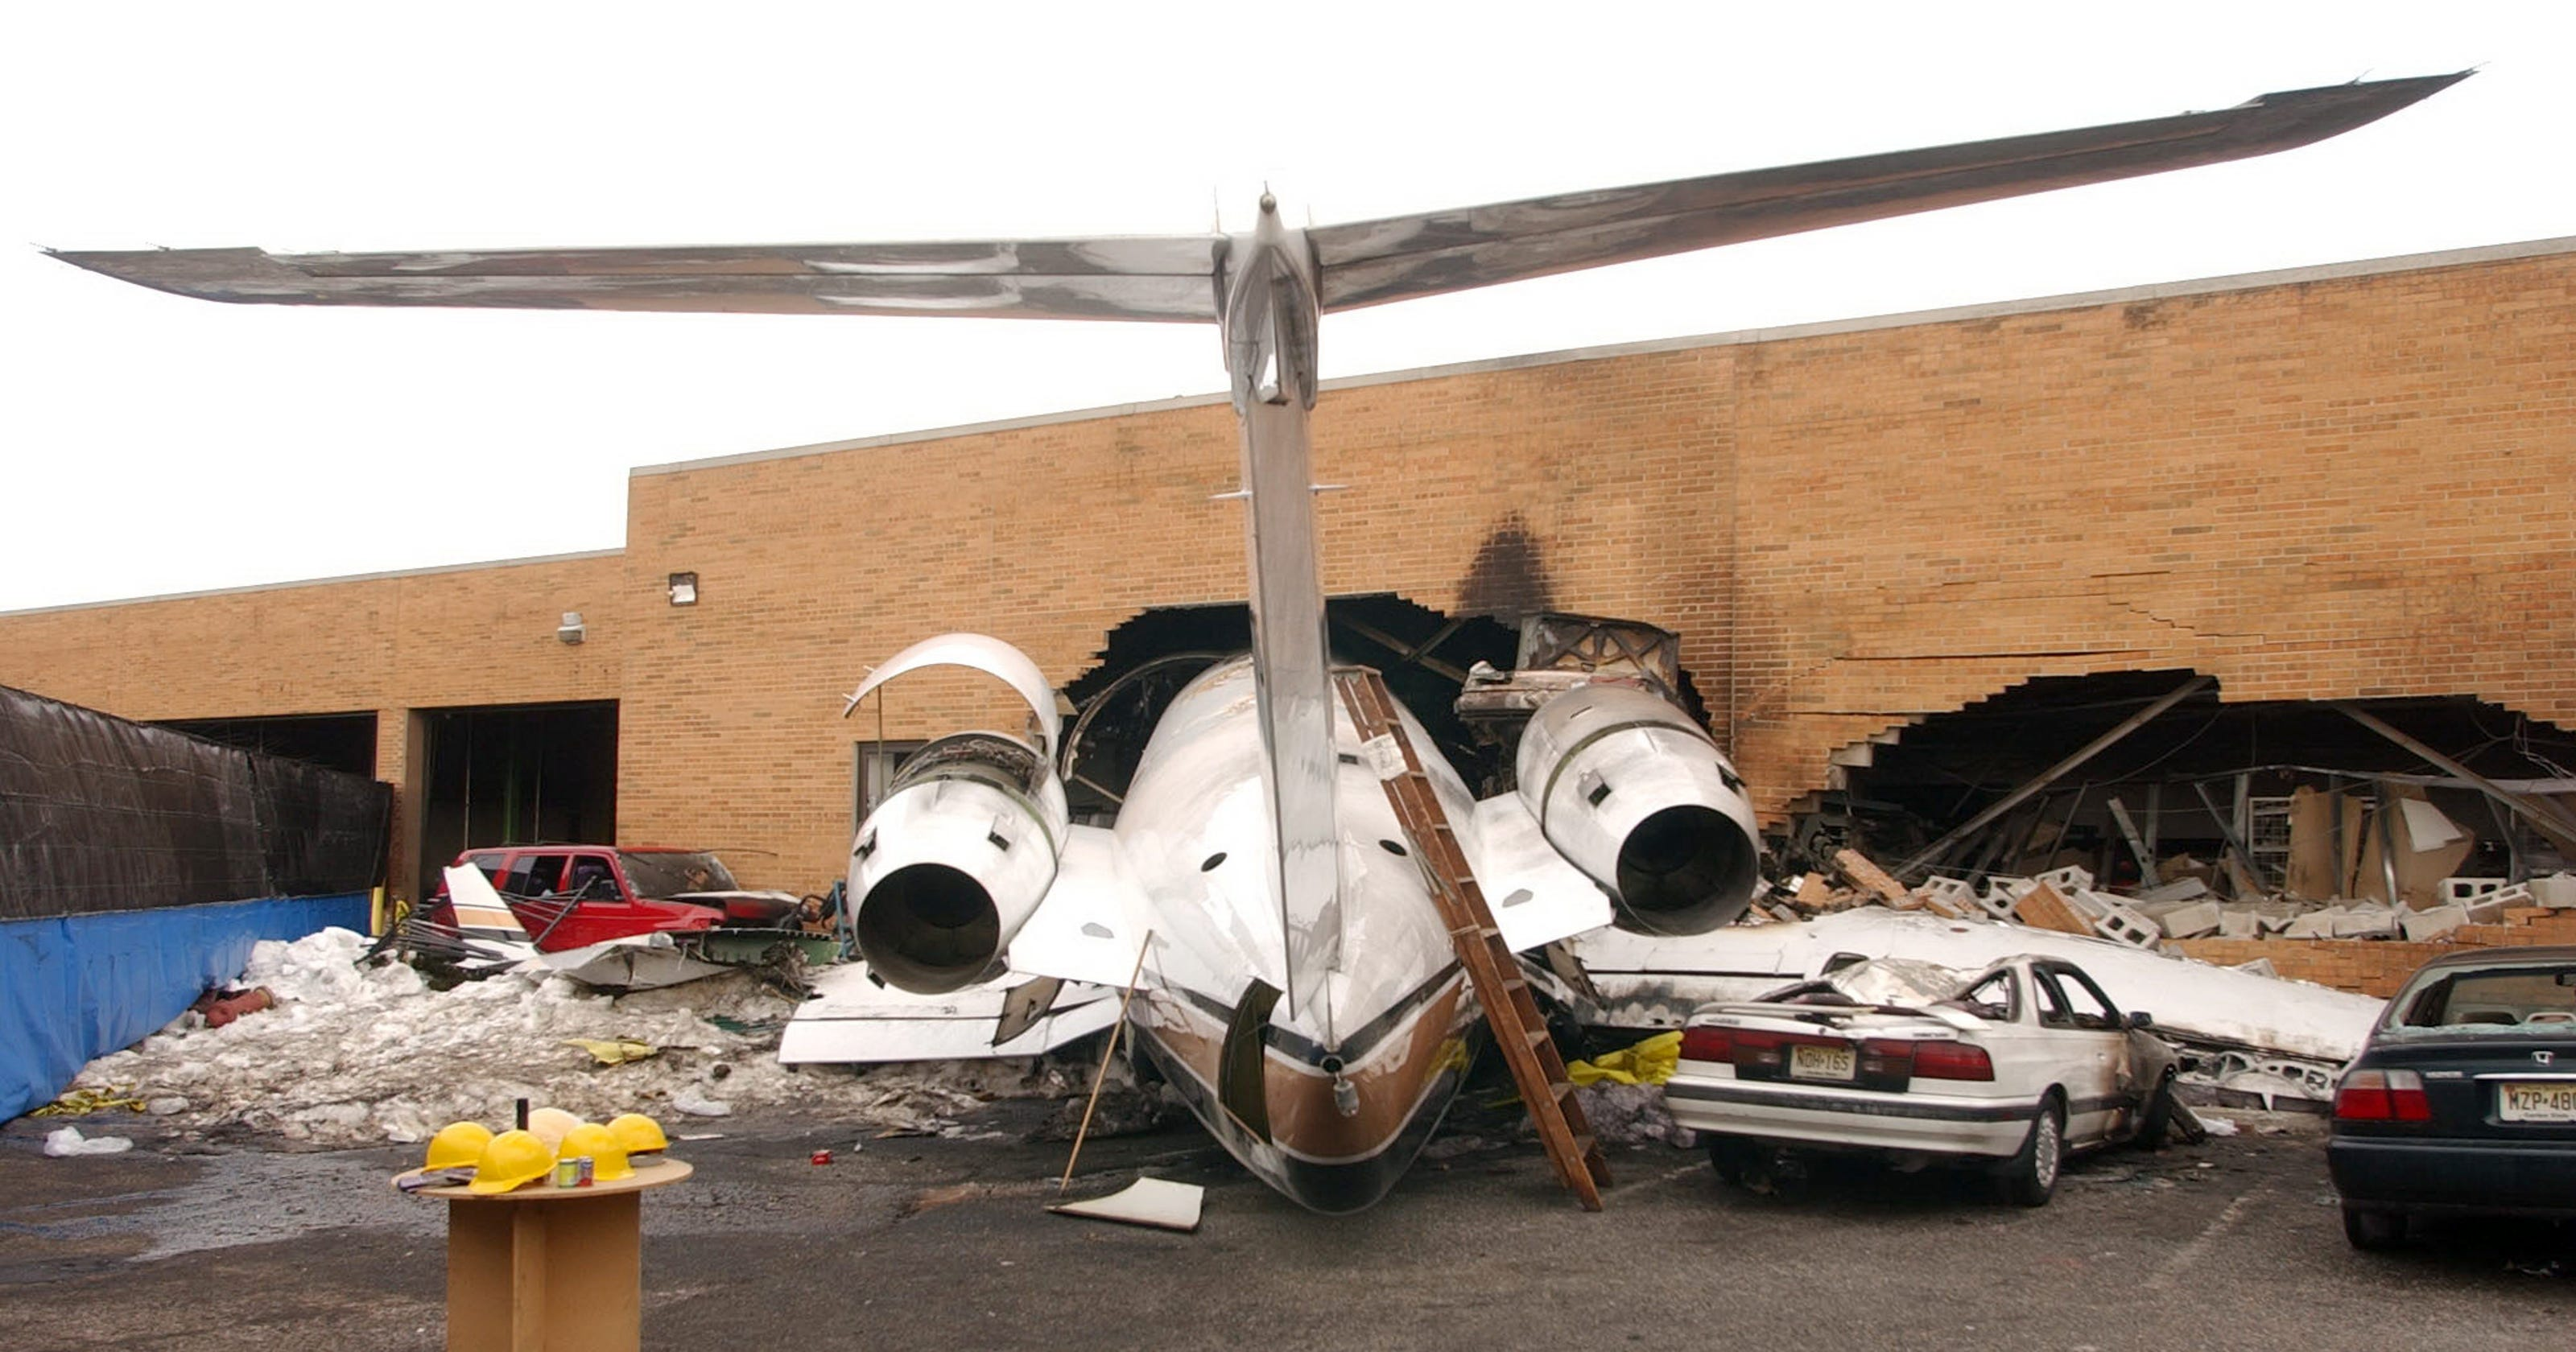 Timeline: Crashes and mishaps at Teterboro Airport on helicopter crash investigation, fire investigation, plane crashes on property, police crash investigation, plane home, air force crash investigation, truck accident investigation, bus accident investigation, plane patent, airbus crash investigation, air plane investigation, aircraft crash investigation,